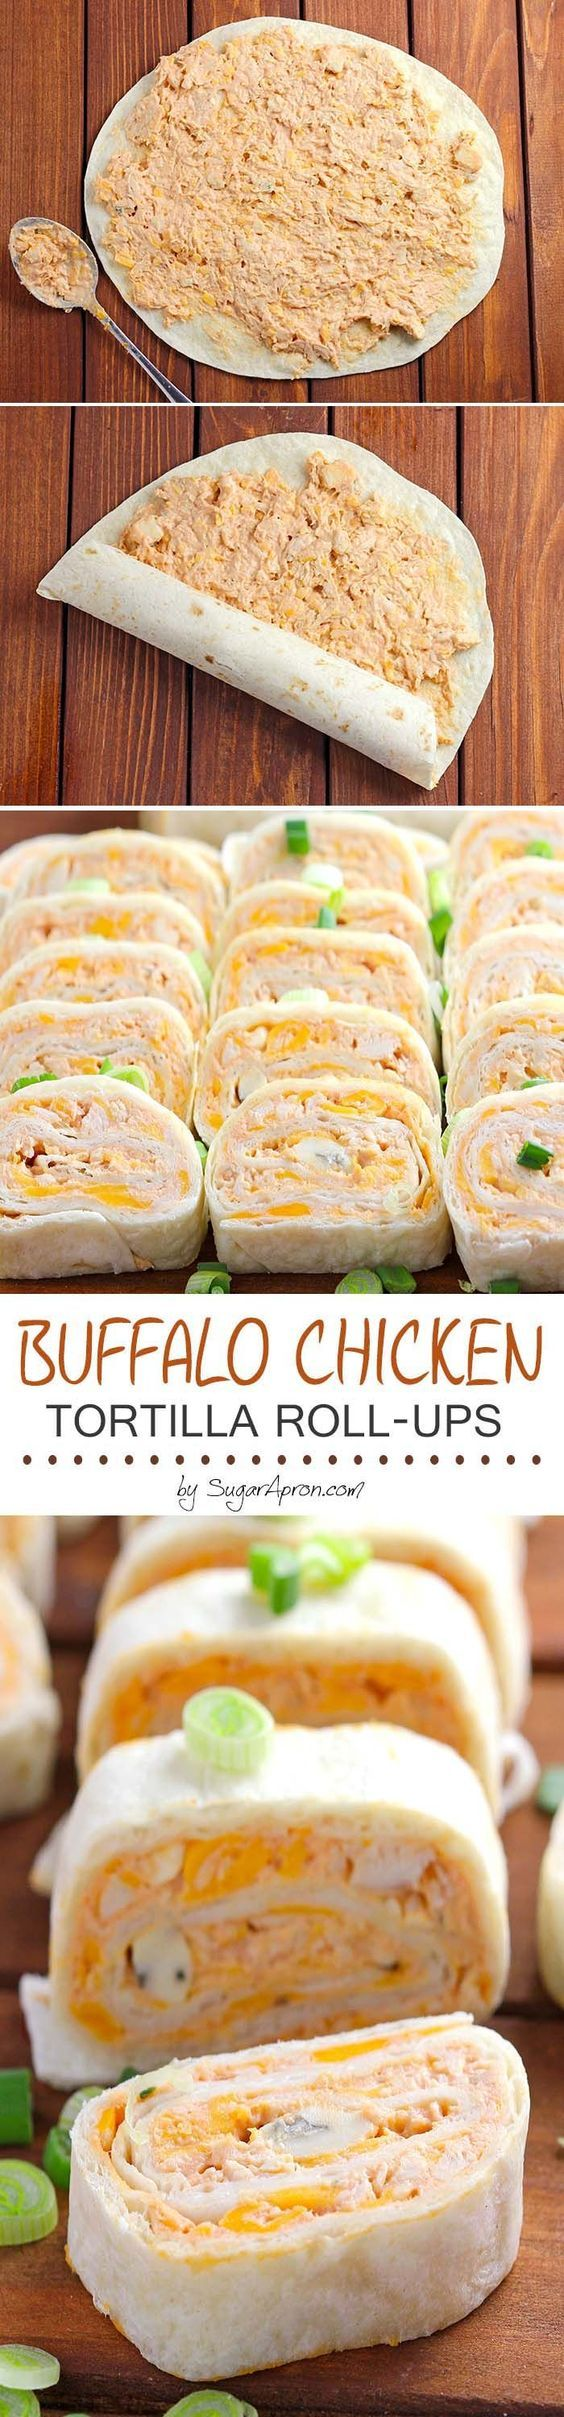 Buffalo Chicken Tortilla Roll Ups                                                                                                                                                                                 More